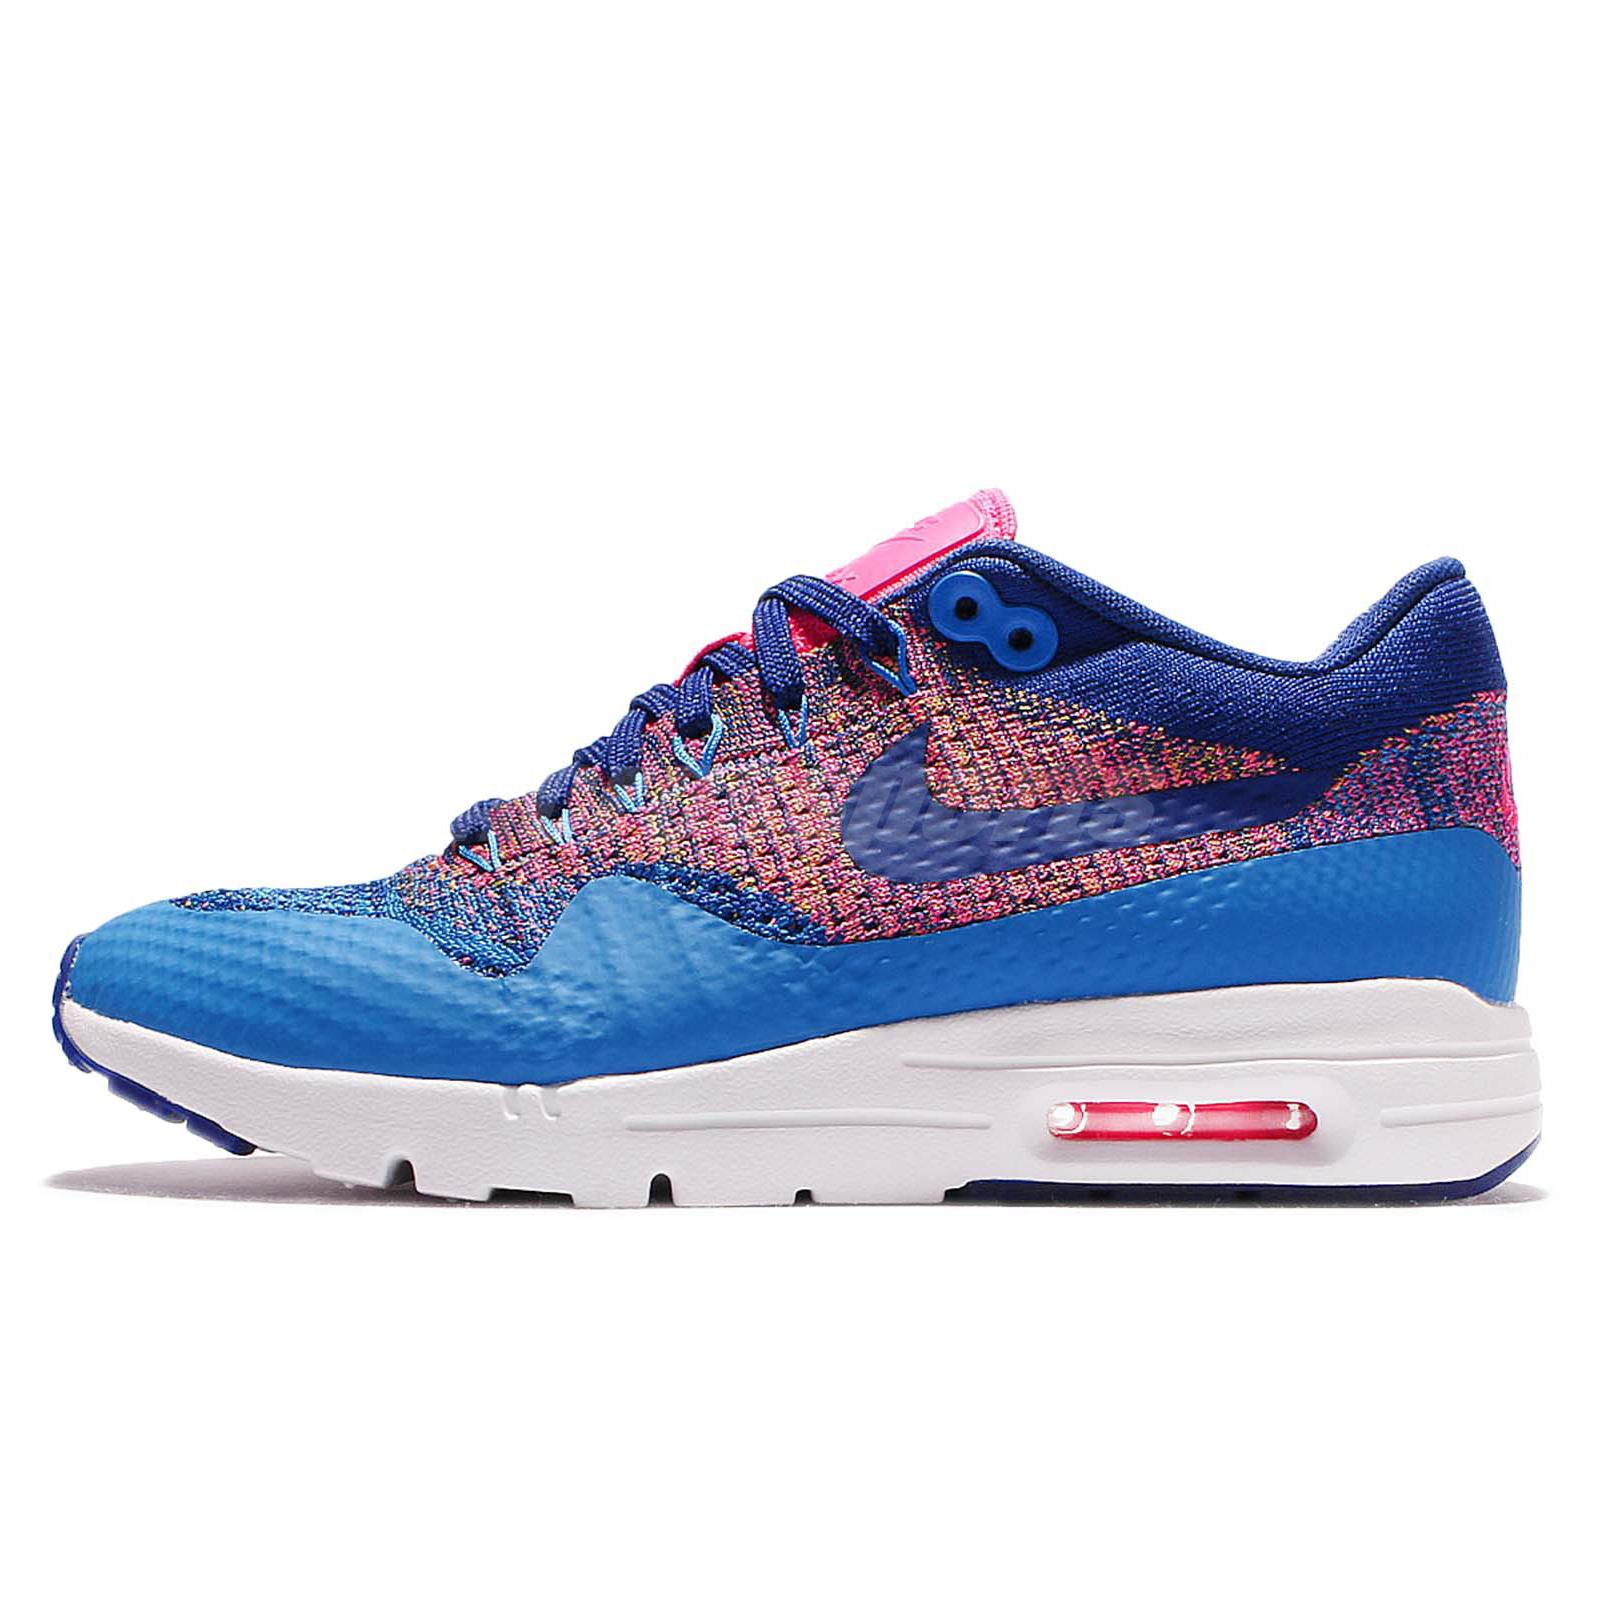 Nike air max 1 running shoes - Wmns Nike Air Max 1 Ultra Flyknit Blue Pink Womens Running Shoes 843387 400